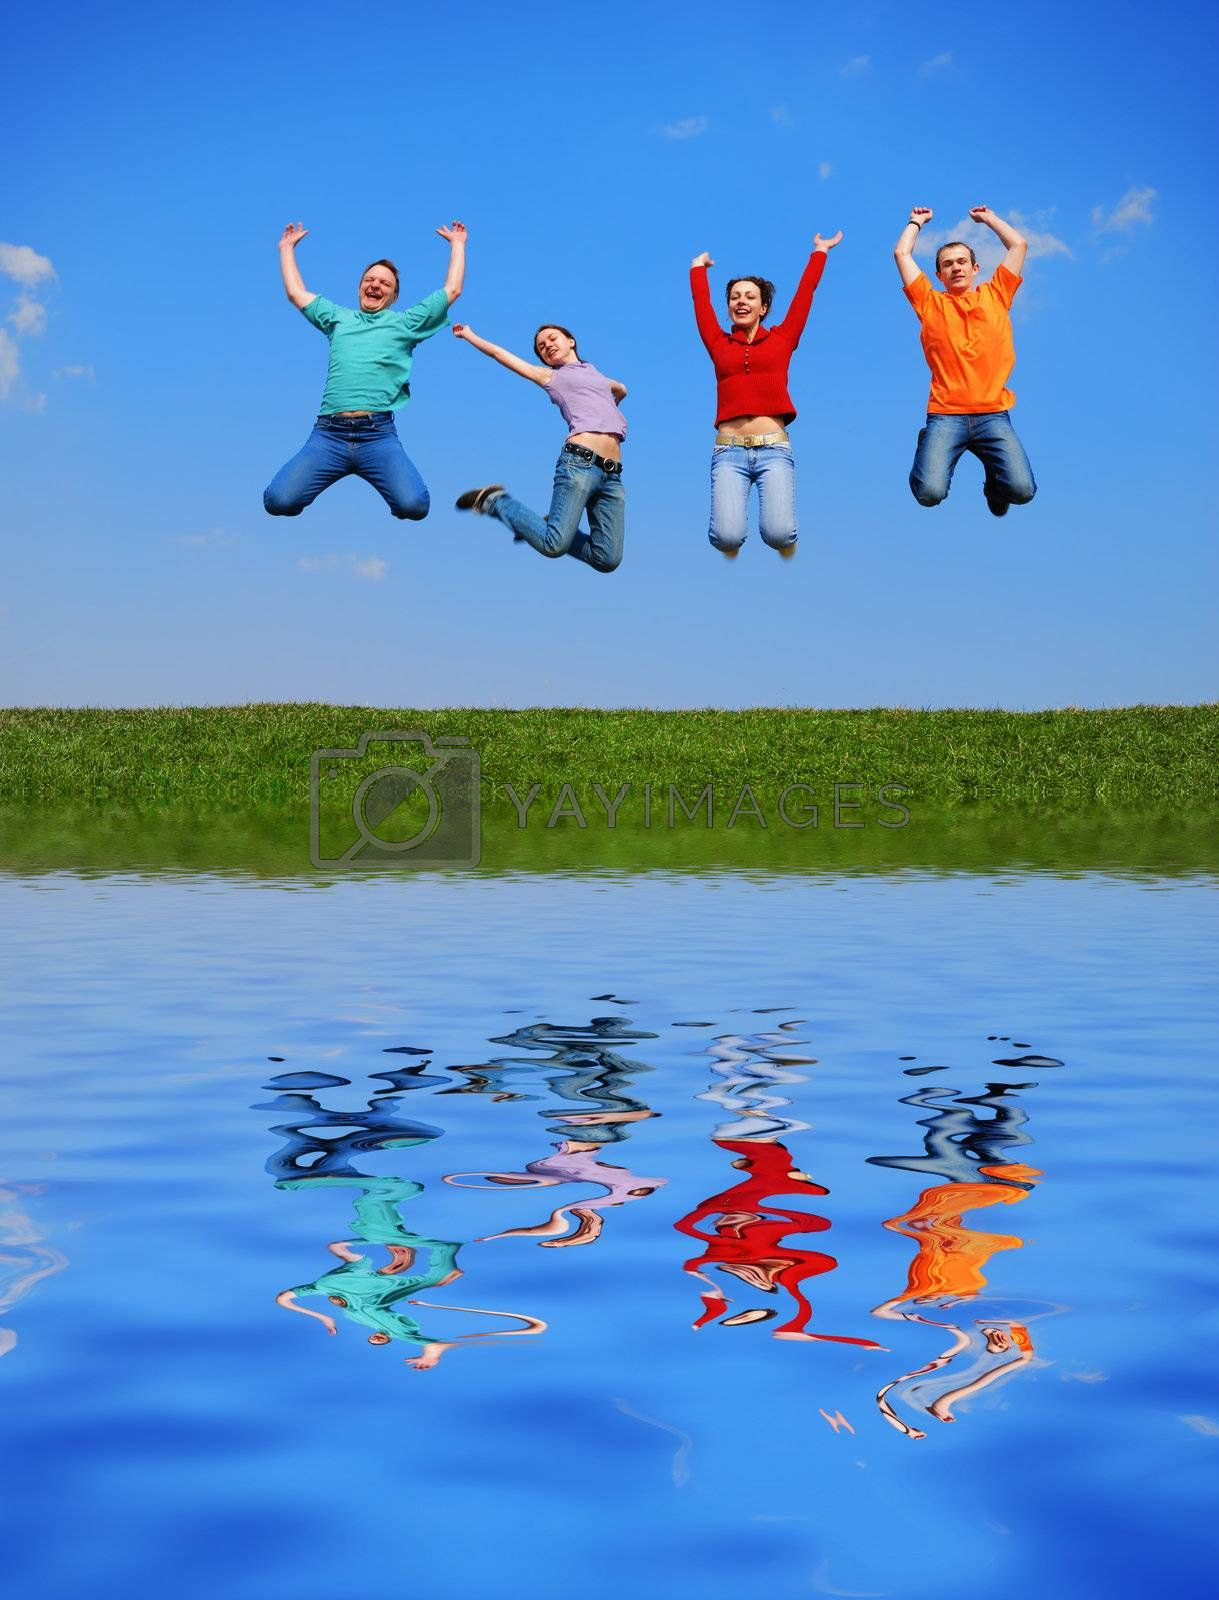 People jumping against blue sky with reflection on water